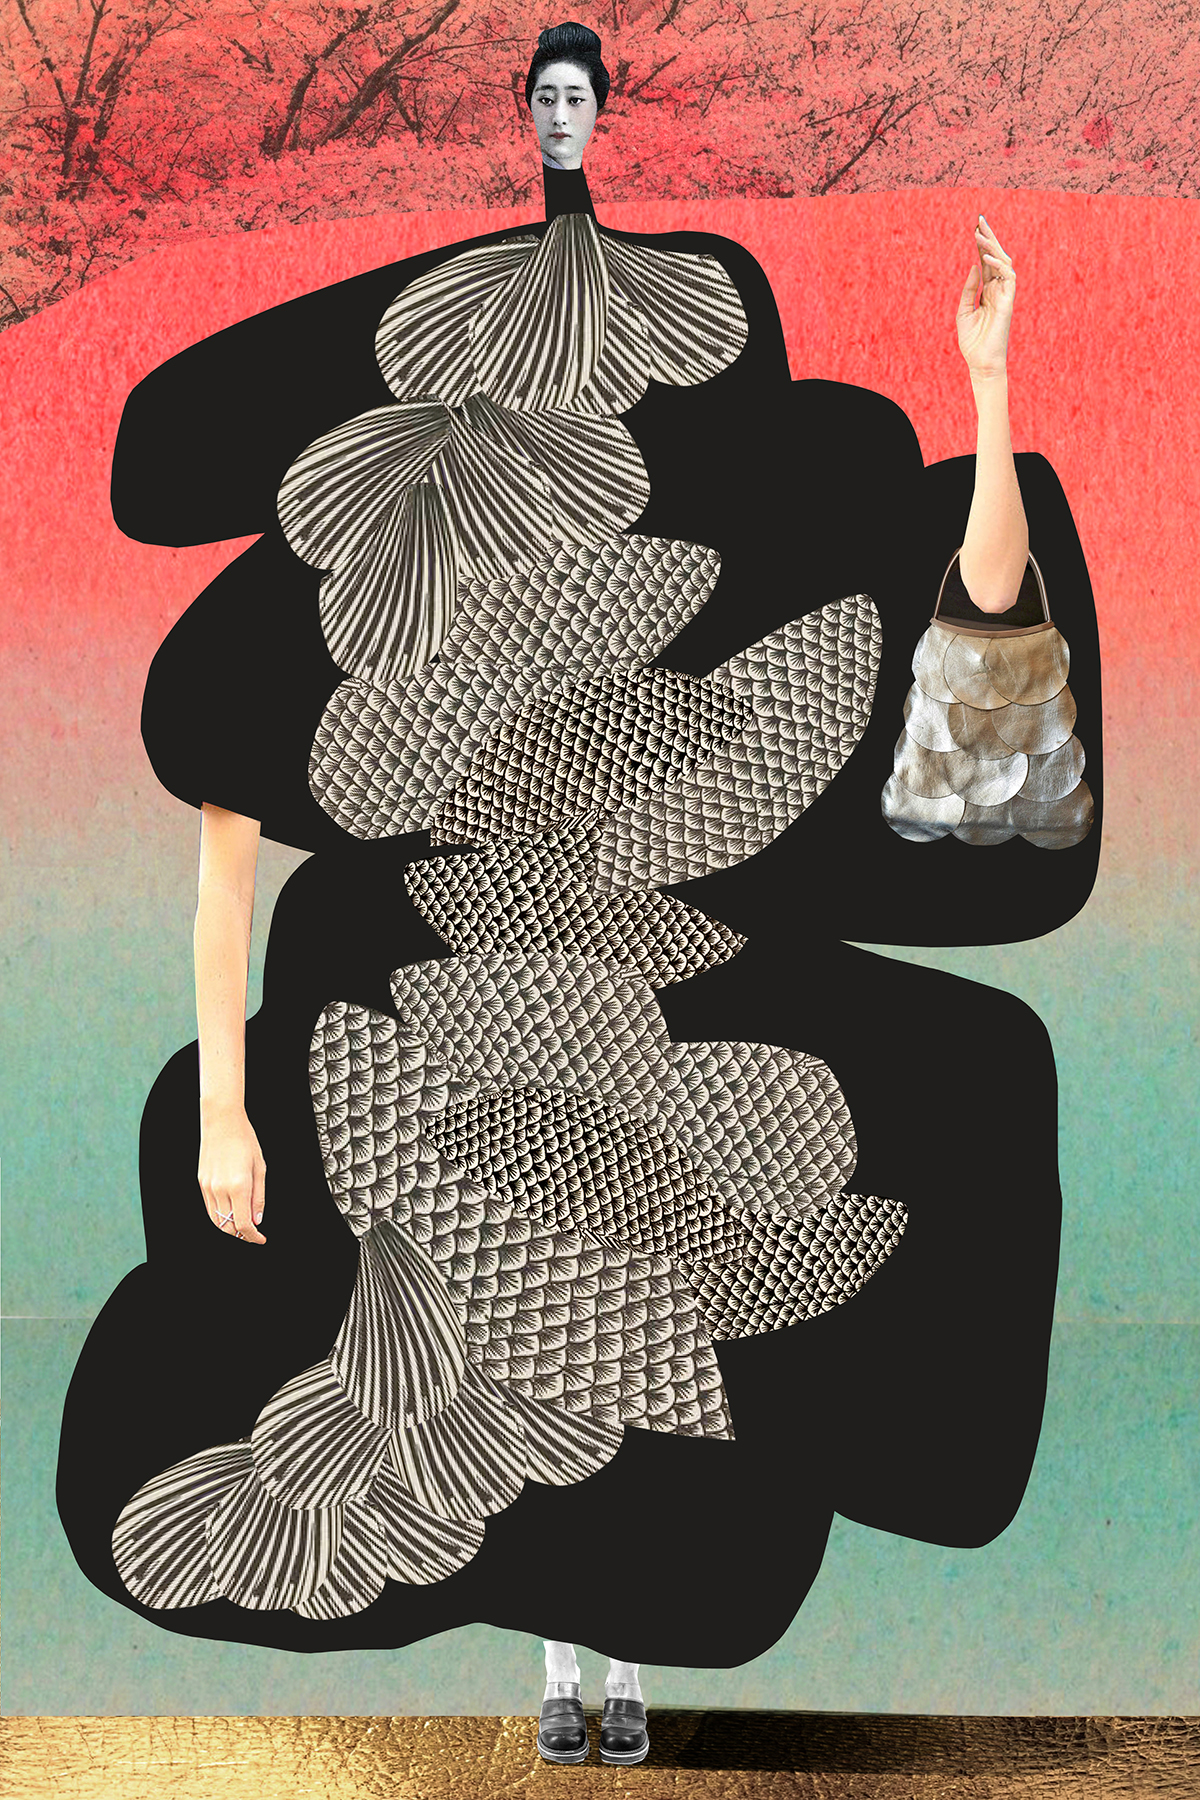 Stretched and Stacked Textures Become Elongated Female Figures in New Work by Johanna Goodman